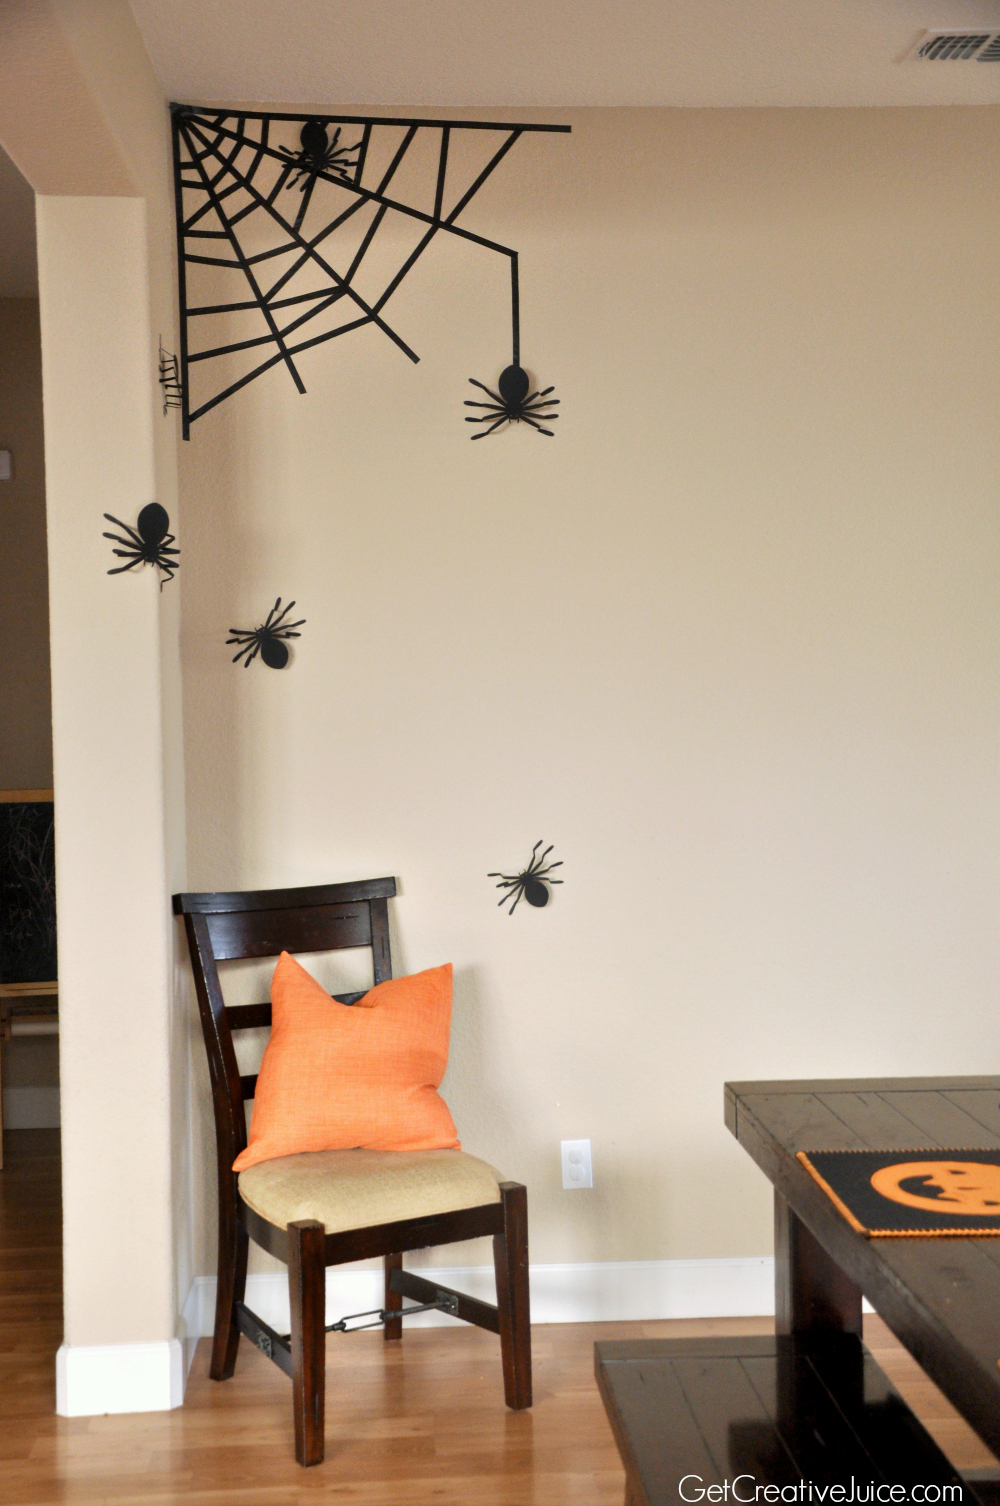 Halloween diy decor -  Washi Tape Spider Web Wall Decor Easy Fast Diy Halloween Decoration